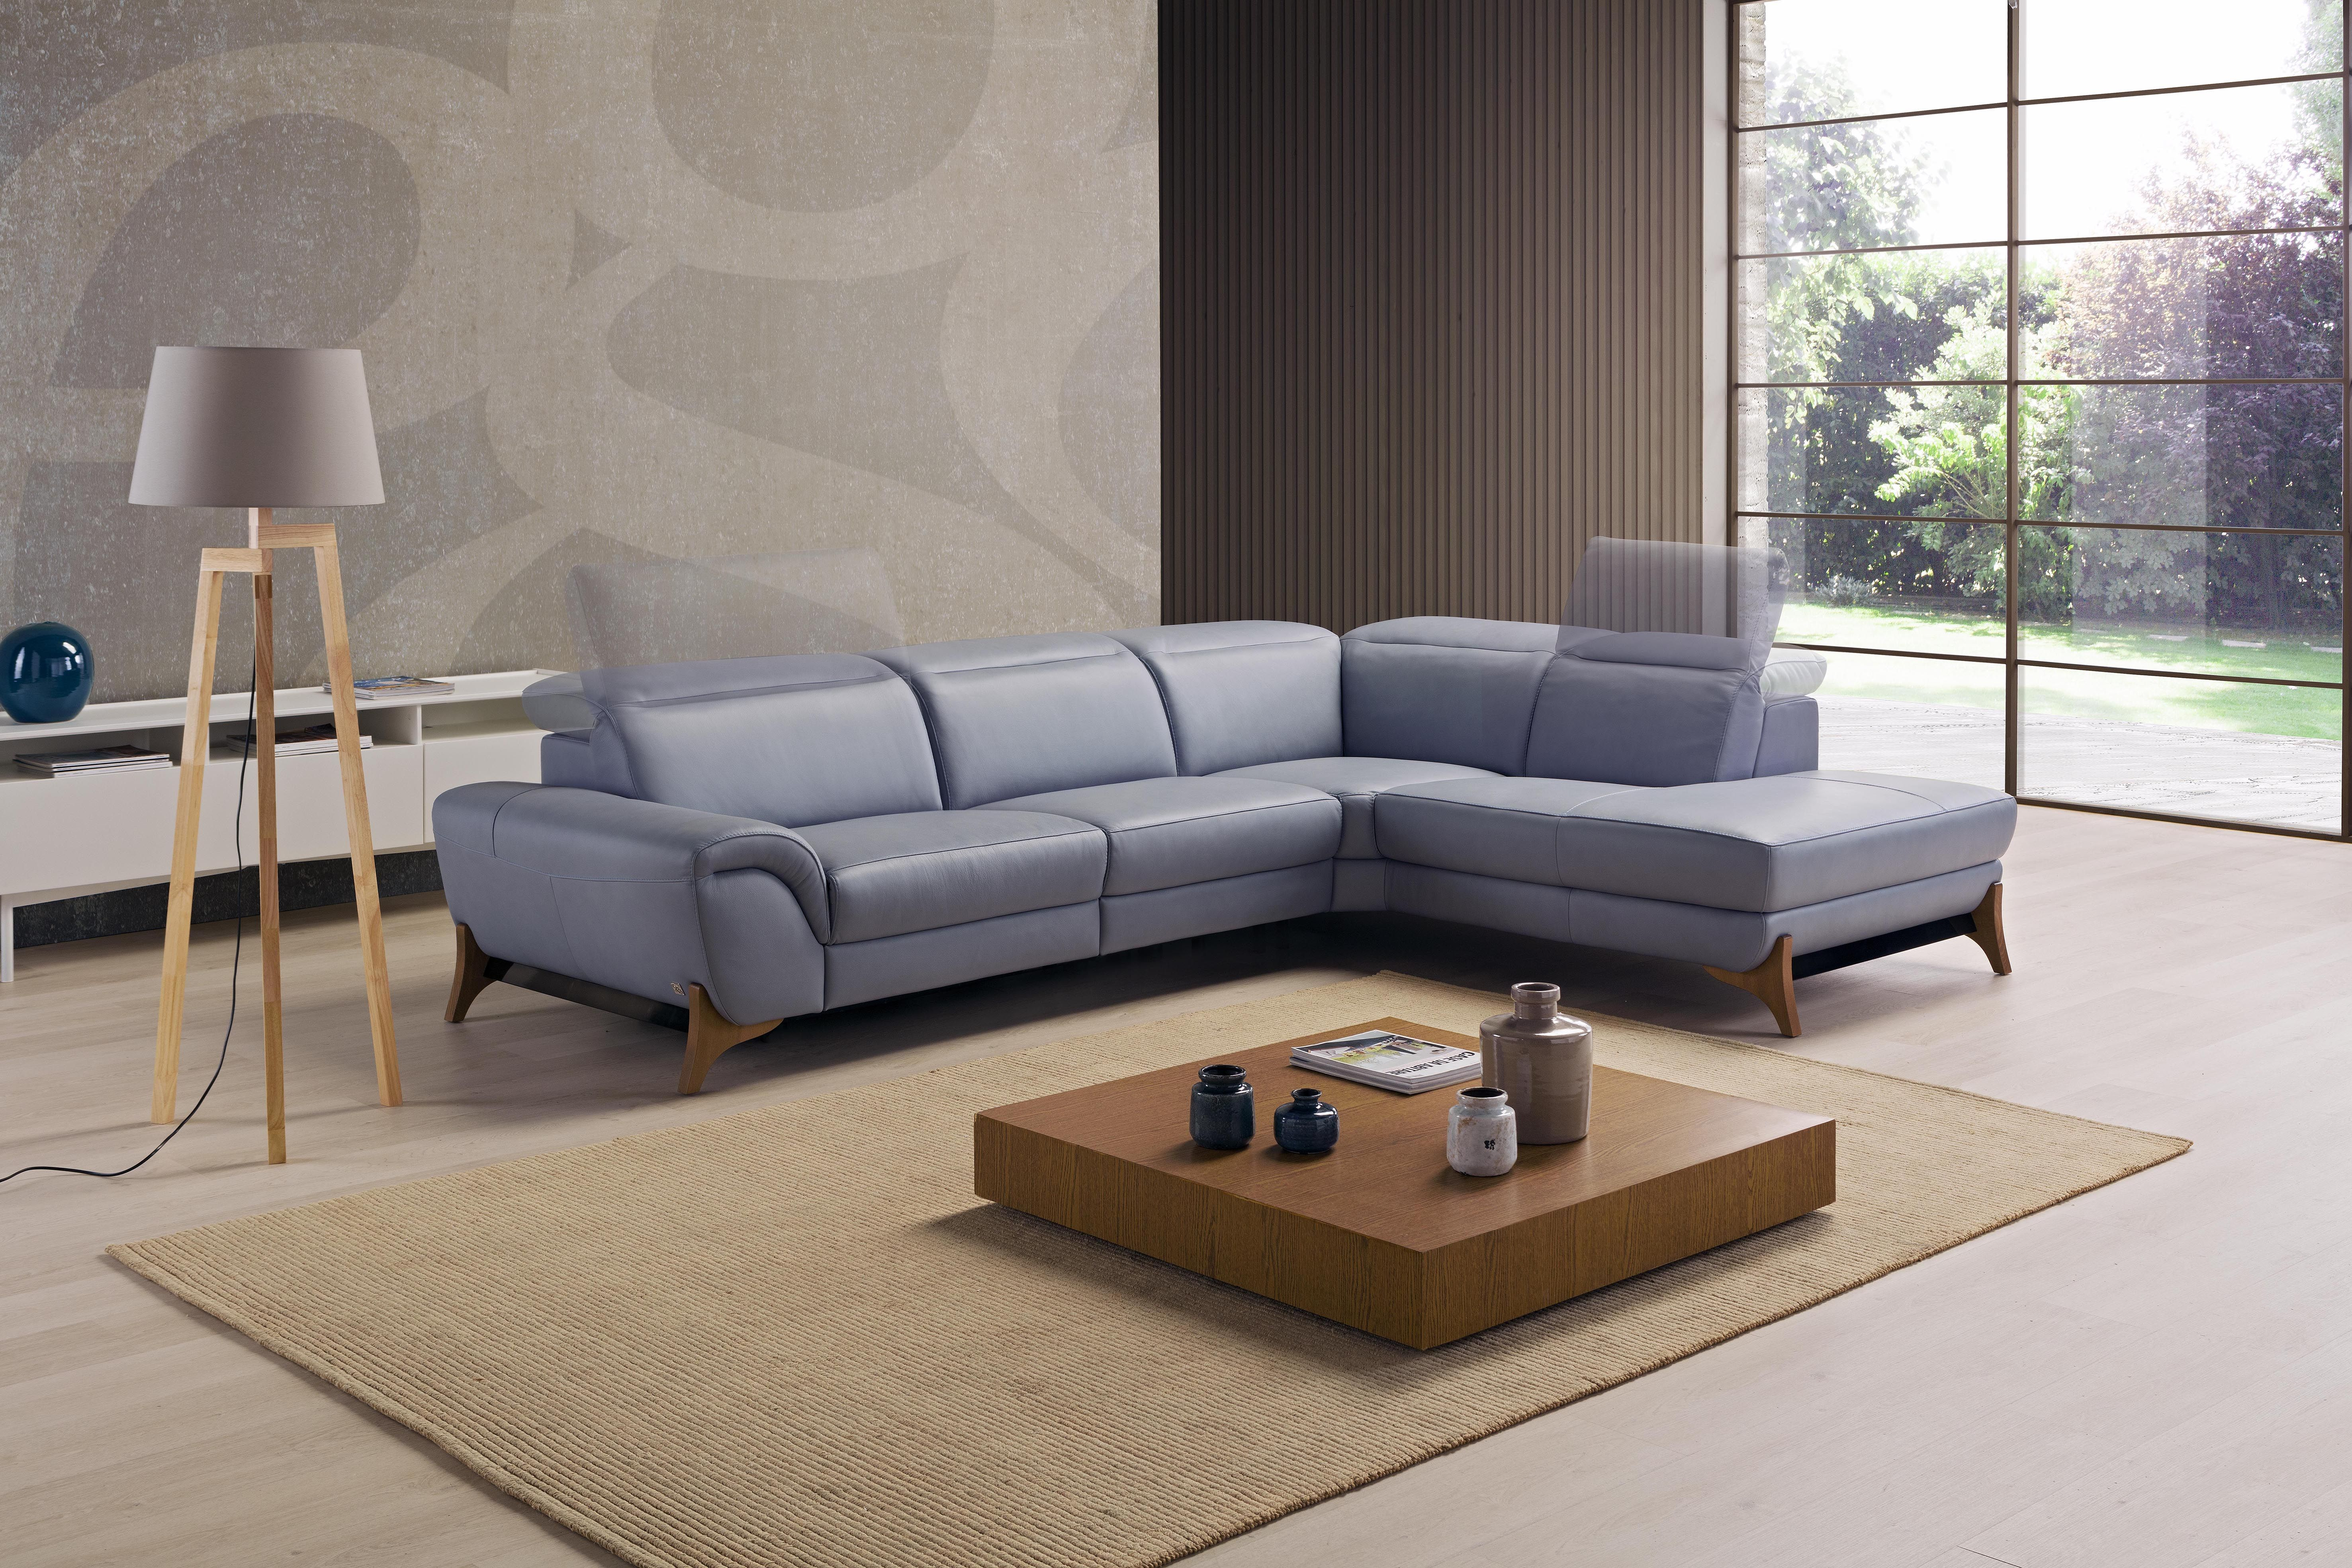 Pin By Rajiv Sanjith On Couches In 2020 Home Decor Interior Design Couch